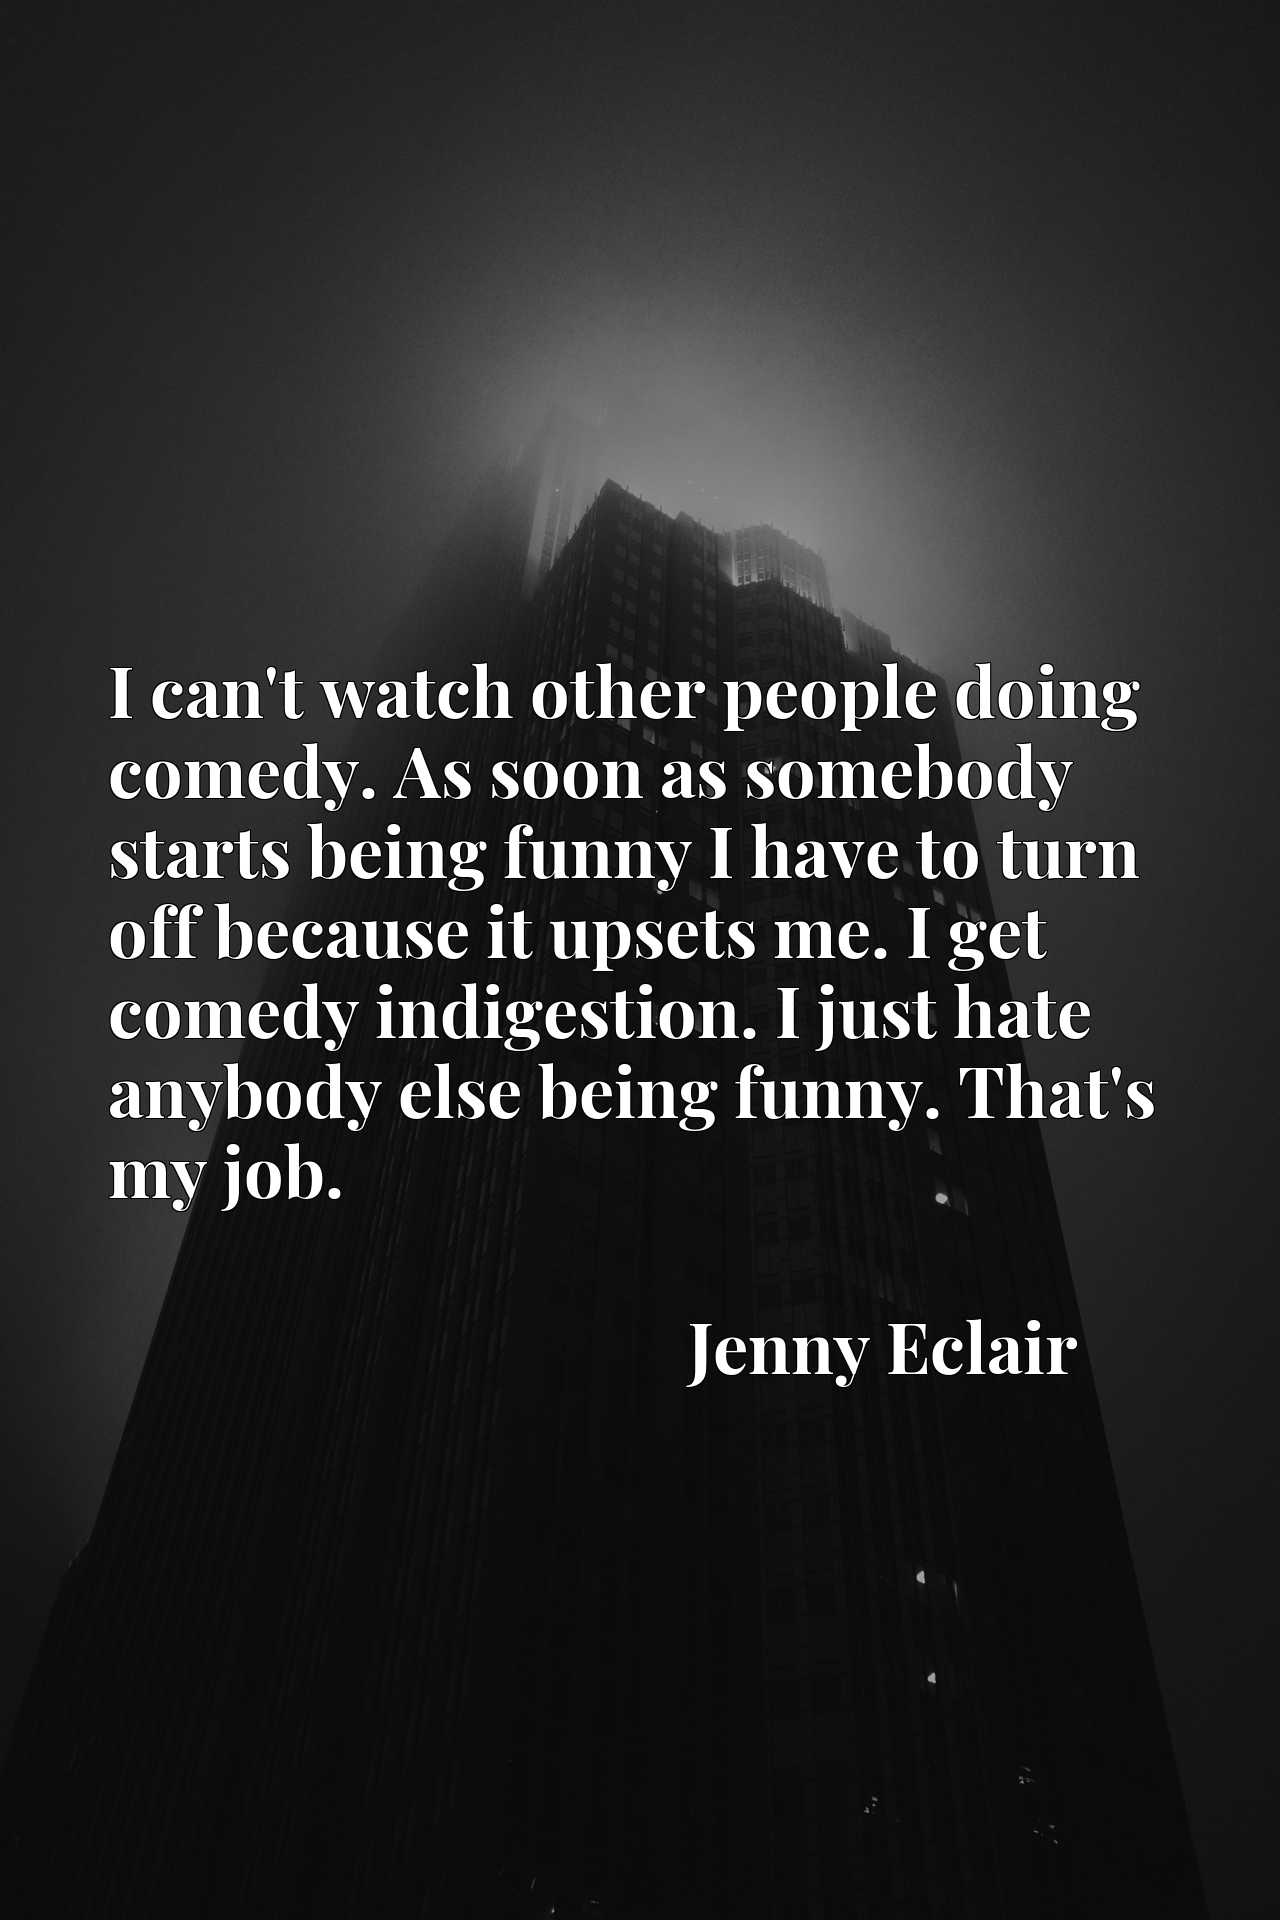 I can't watch other people doing comedy. As soon as somebody starts being funny I have to turn off because it upsets me. I get comedy indigestion. I just hate anybody else being funny. That's my job.